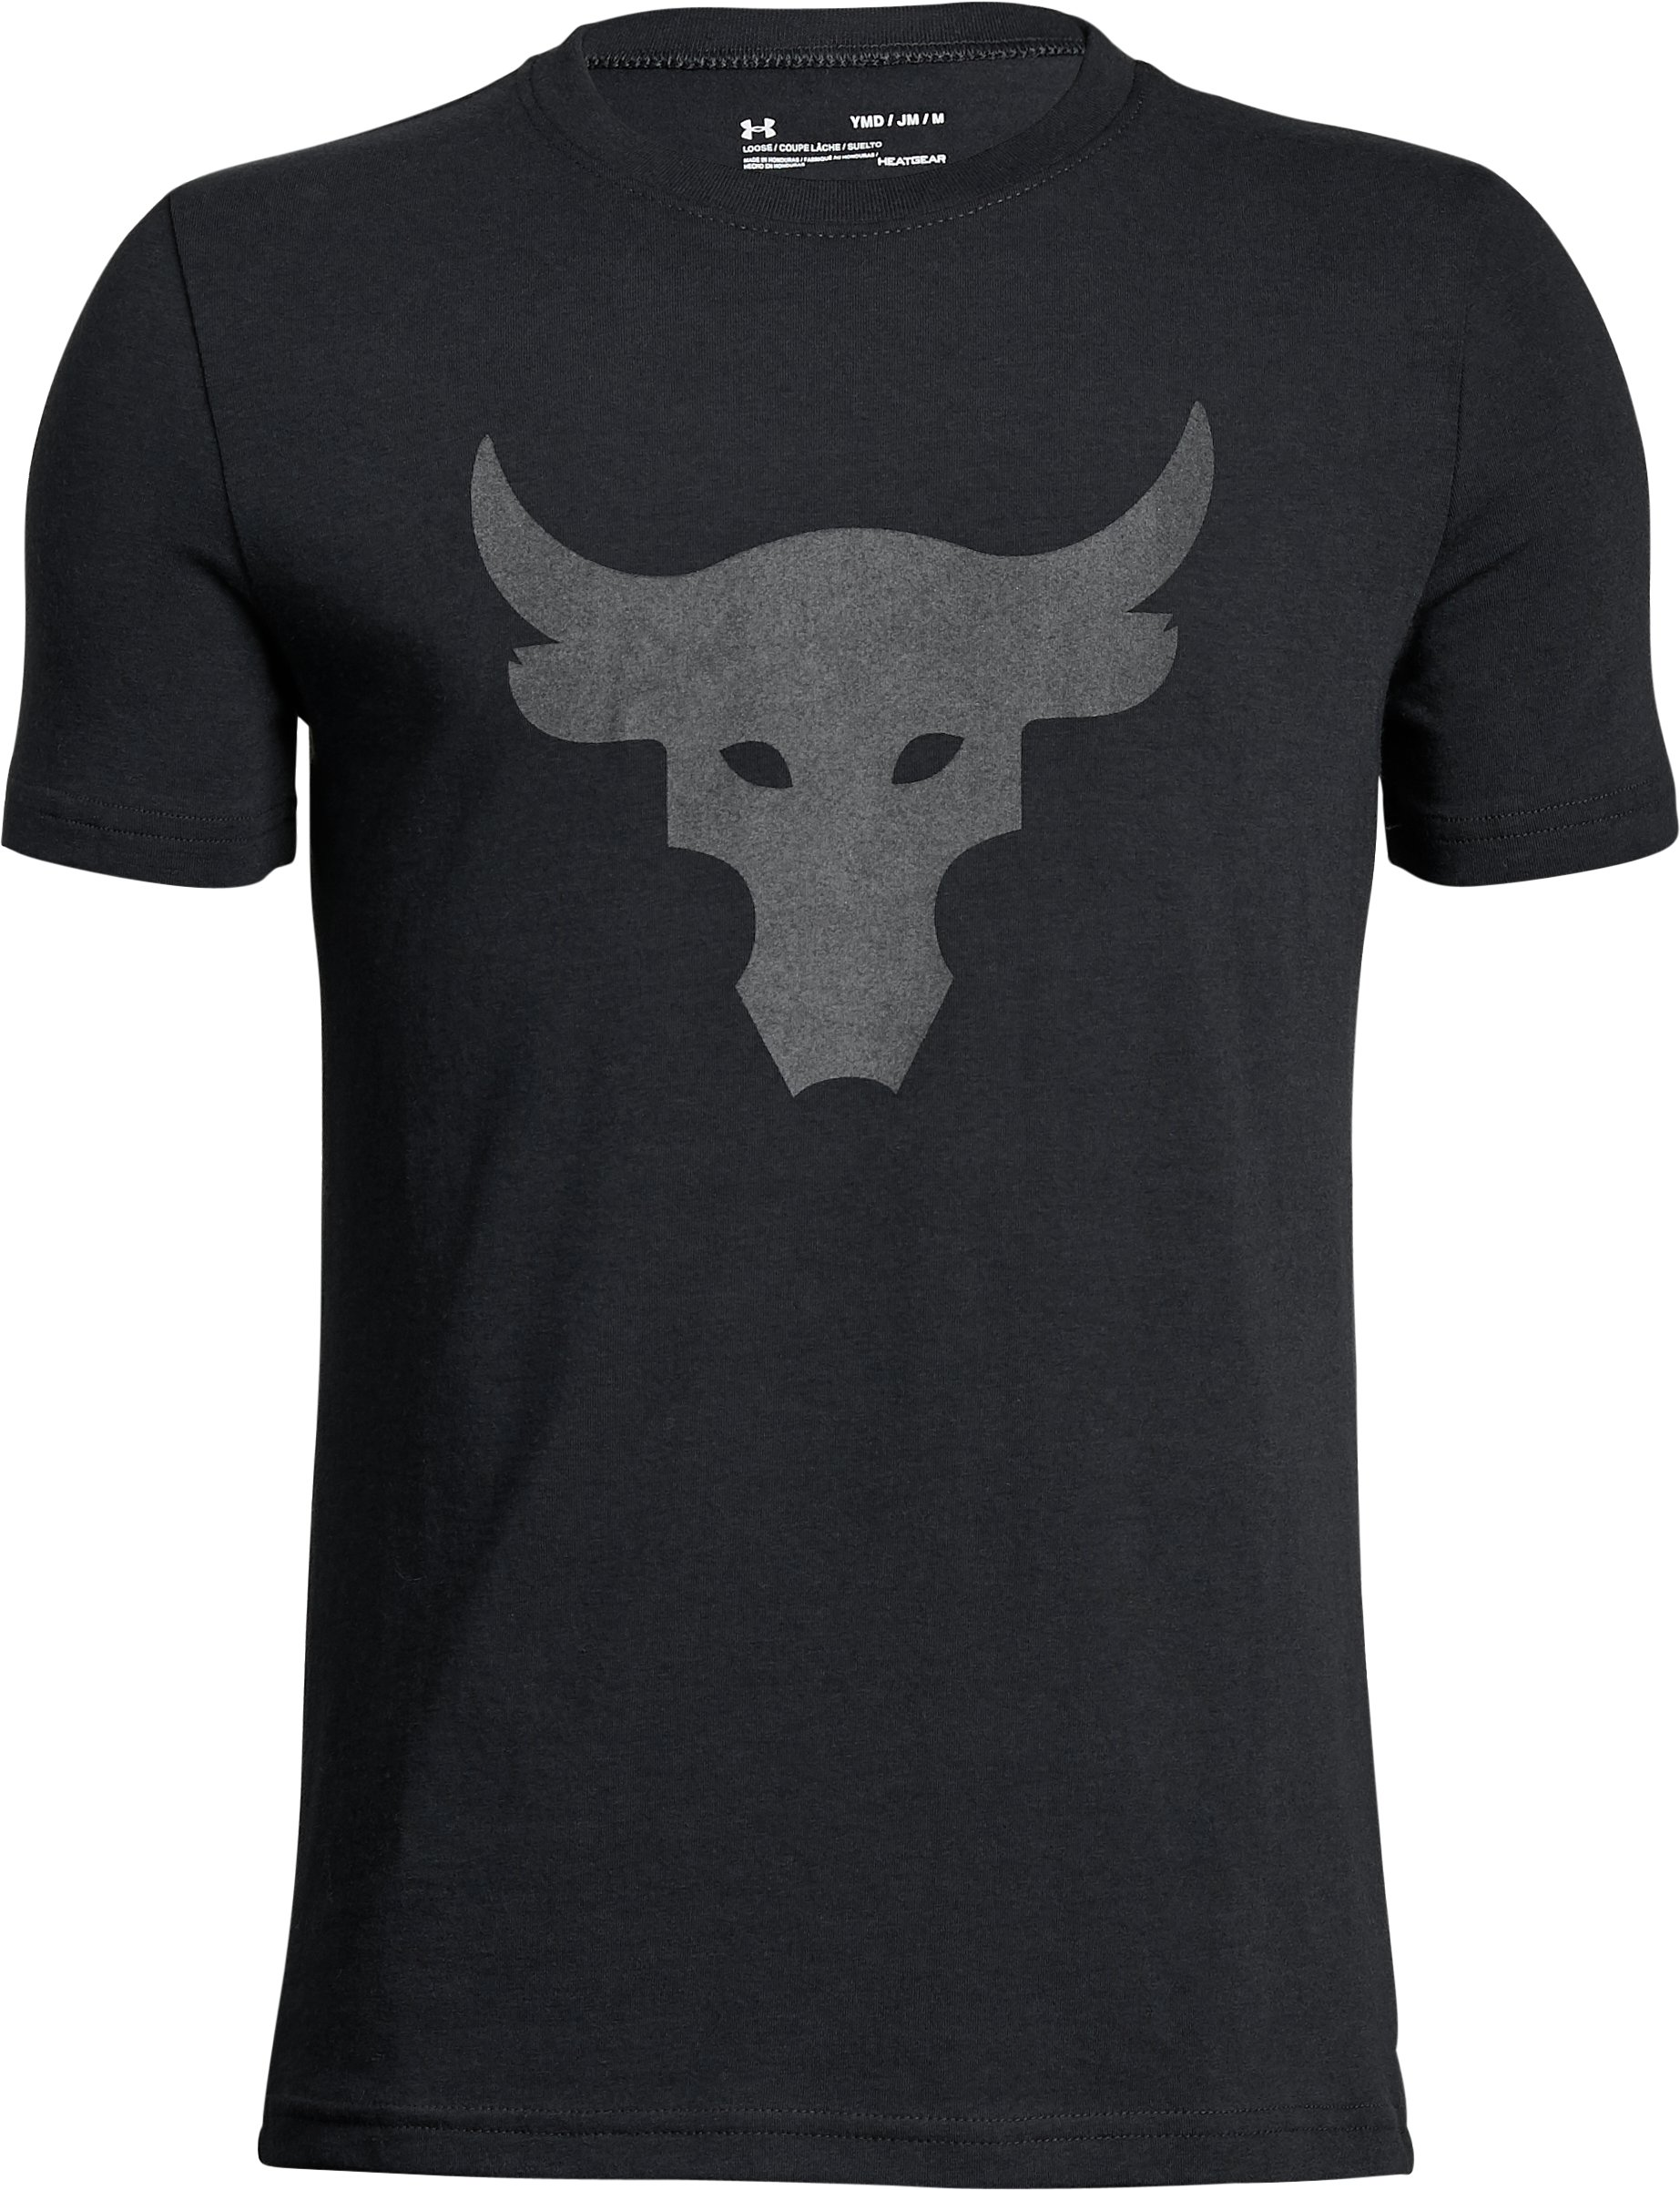 Boys' UA x Project Rock Stealth Bull T-Shirt, Black , undefined